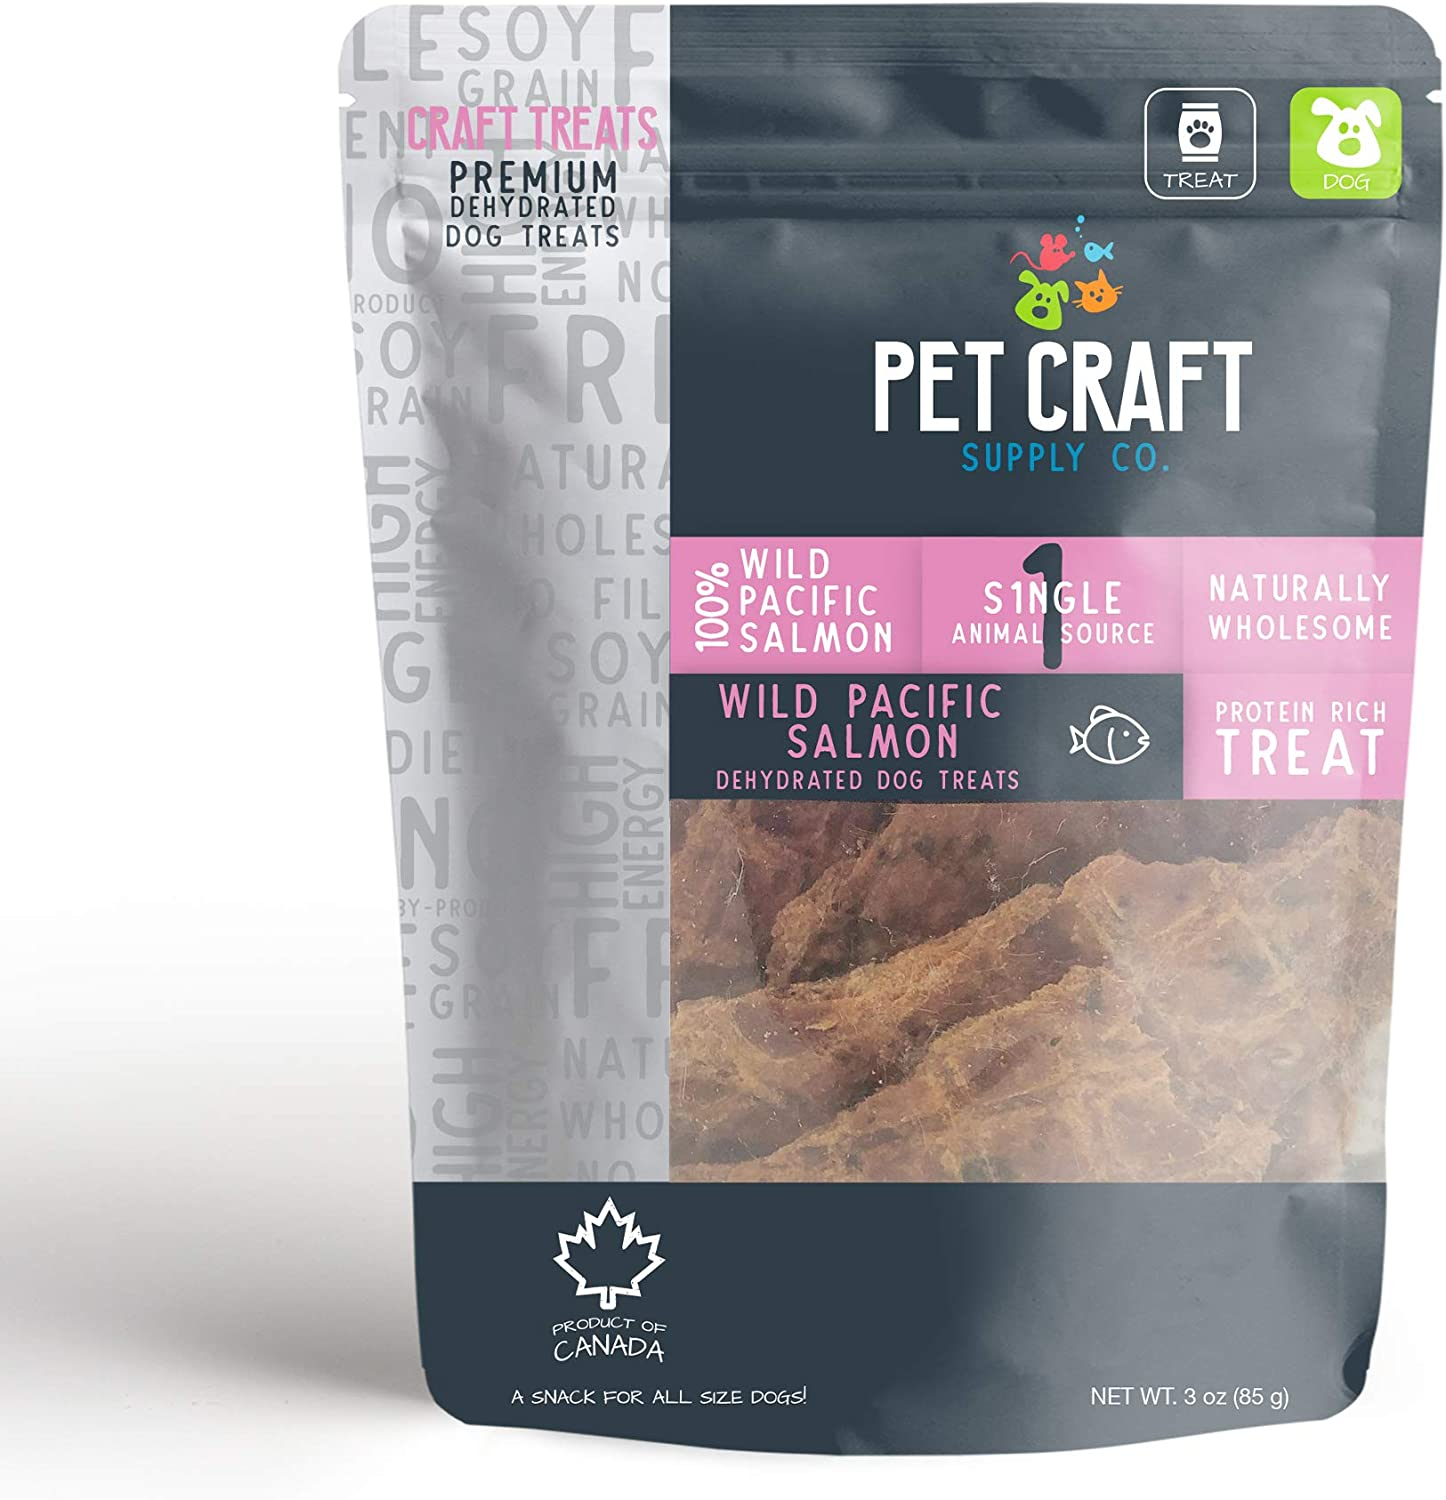 Pet Craft Supply Dehydrated Pure Wild Pacific Salmon Natural Dog Treats a Great Alternative to Freeze Dried Healthy Dog Treats and Cat Treats